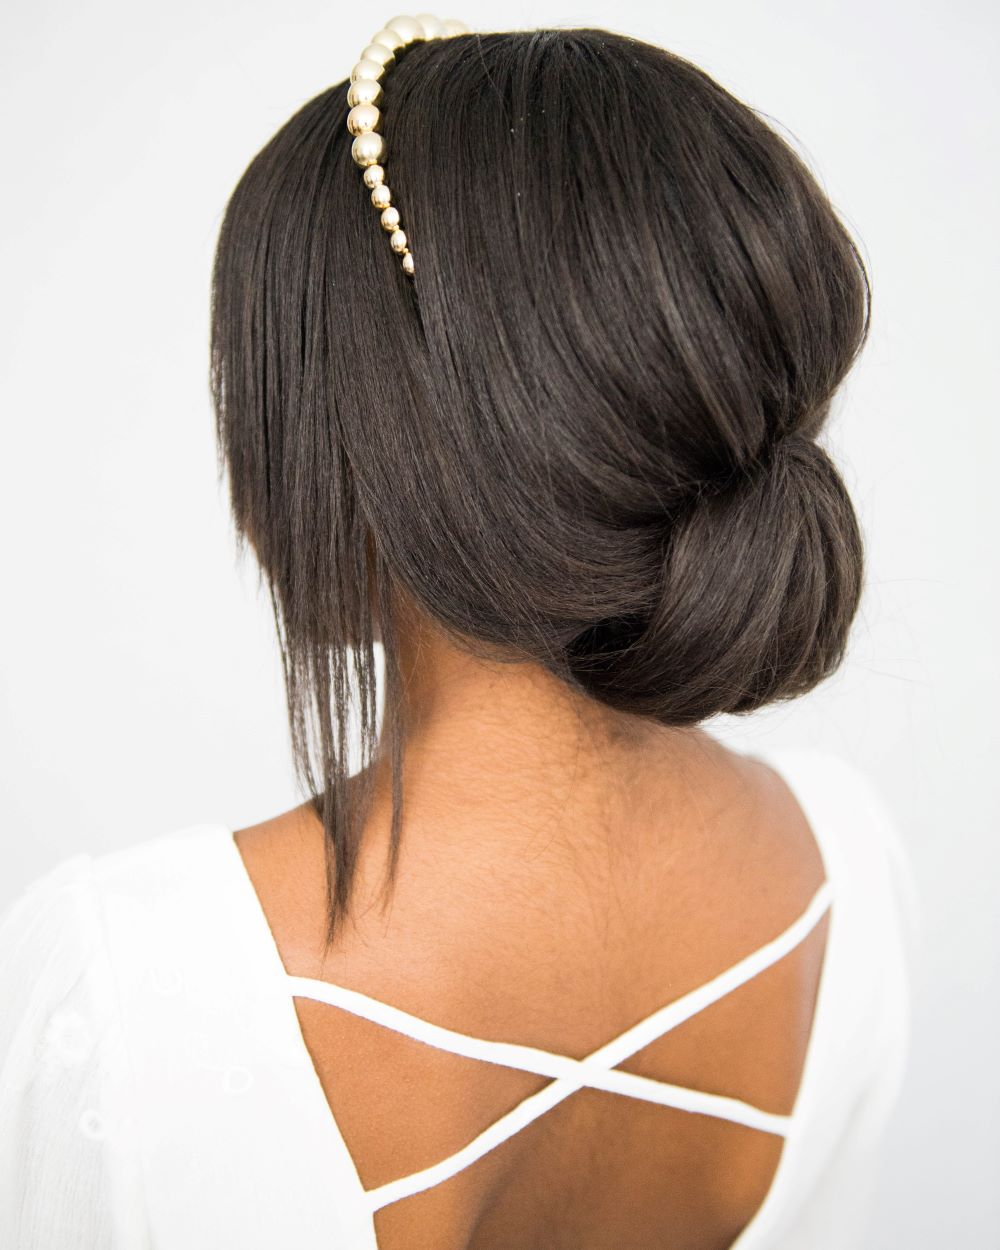 Headband Hairstyles For Brides An Easy Low Updo Perfect For